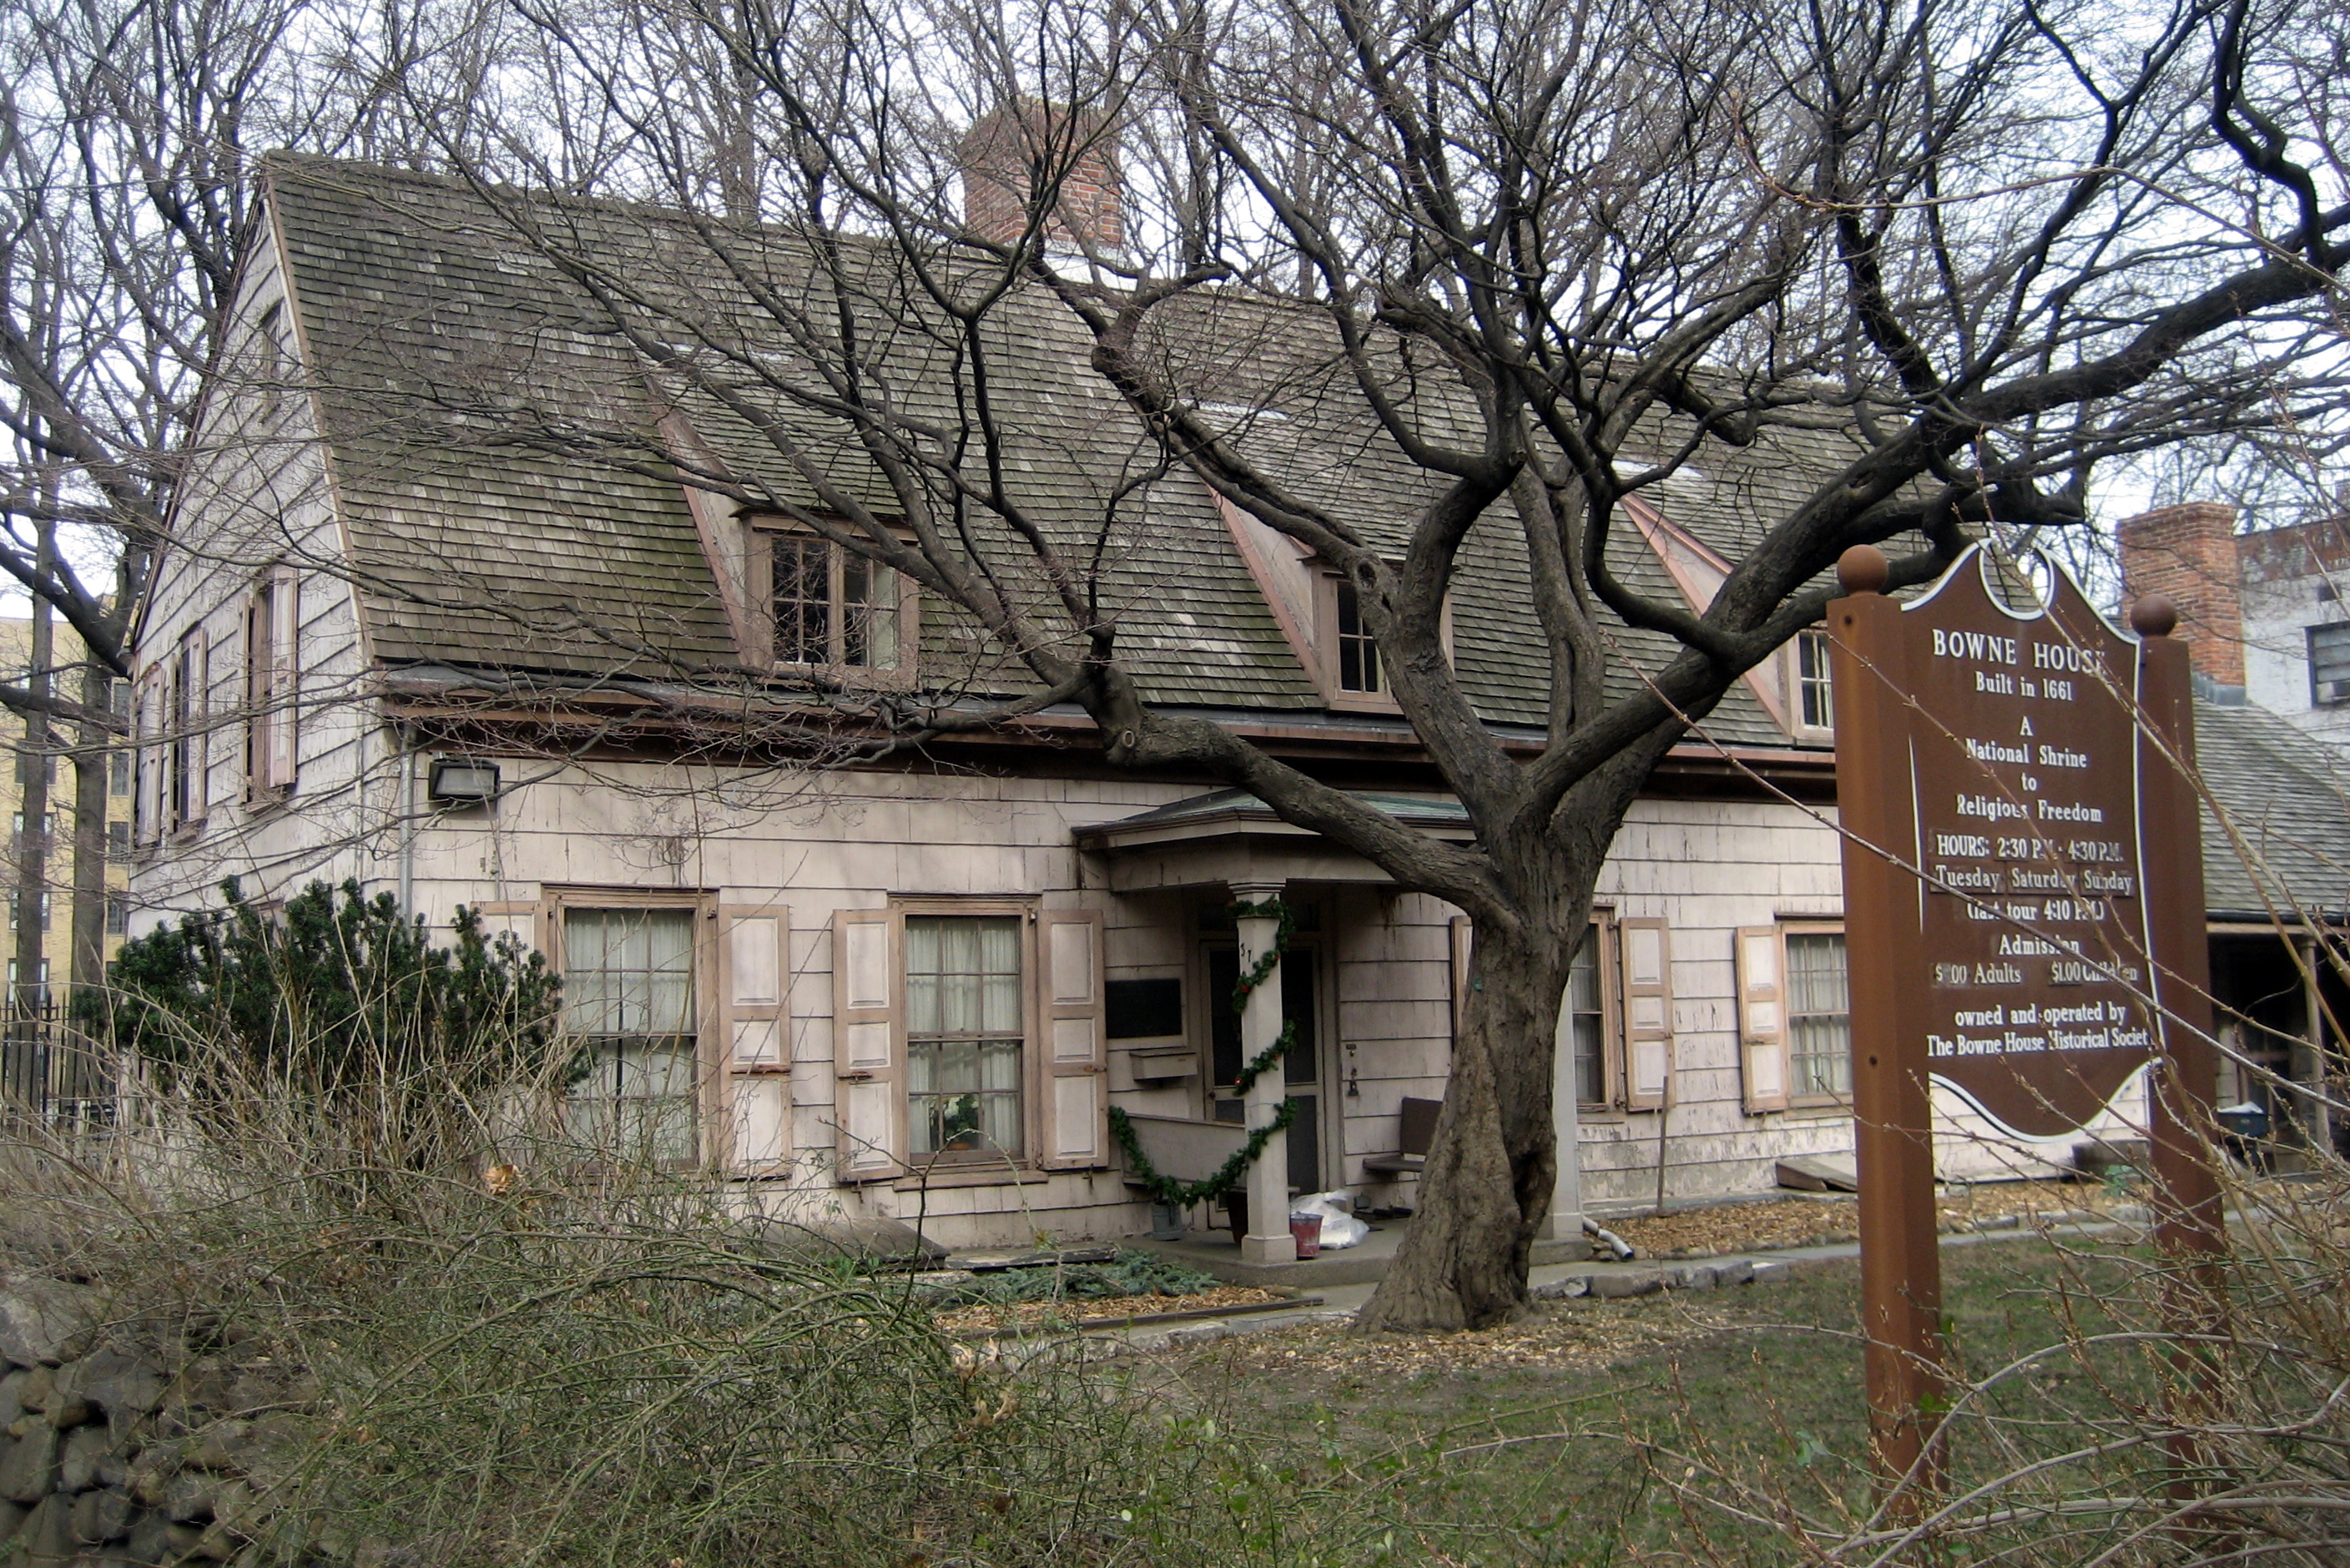 The Bowne House